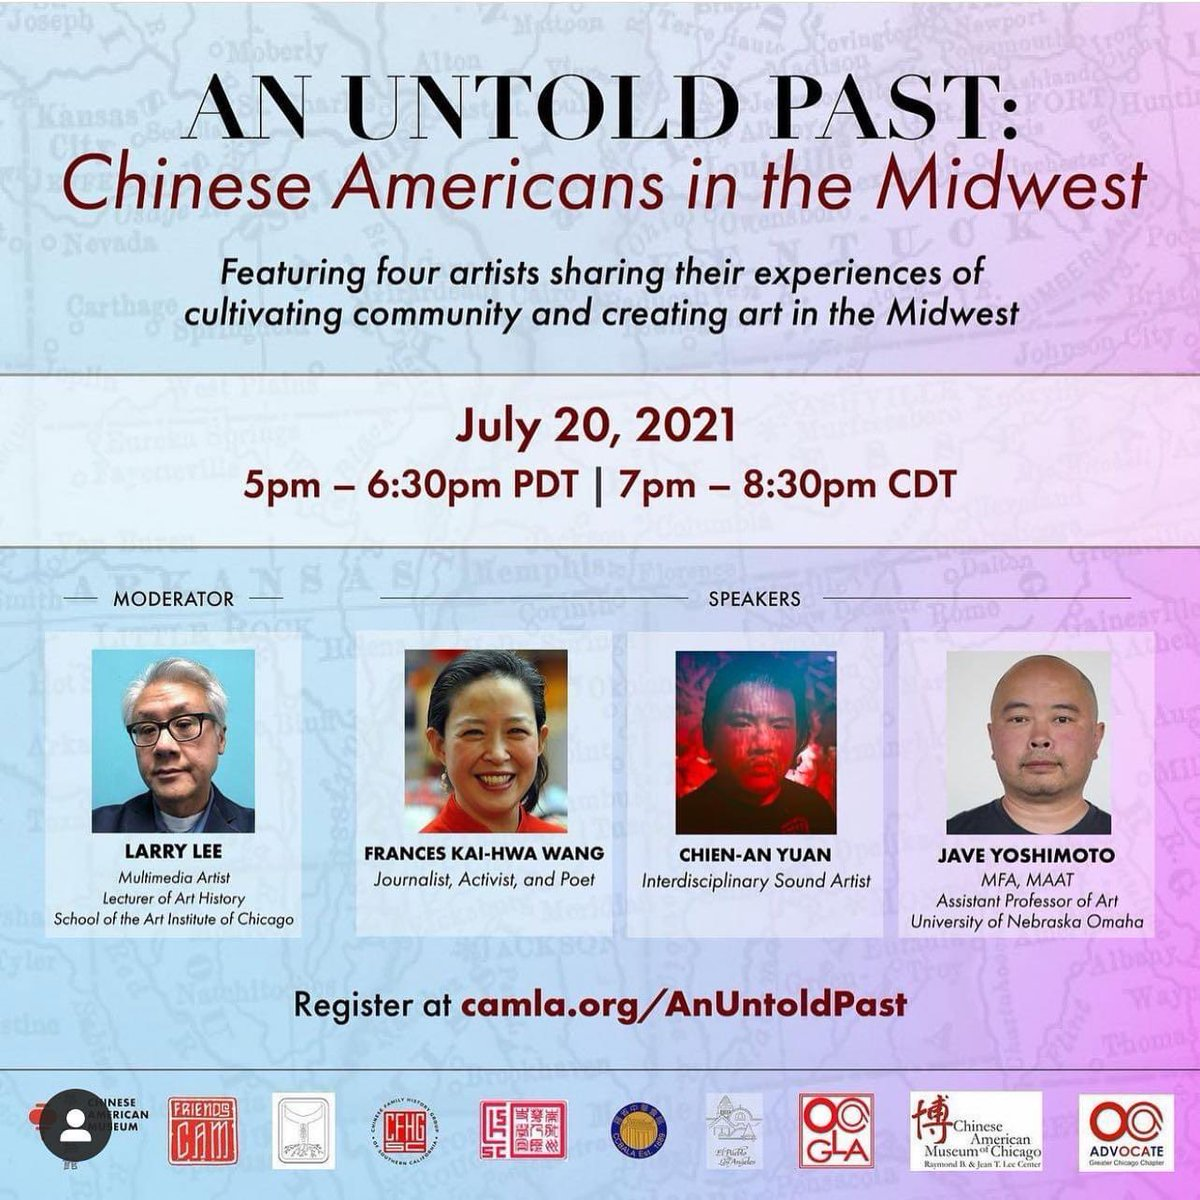 """I'm speaking @camLAorg Tuesday July 20 5pm pdt/ 7pm cdt/ 8pm edt/ 2pm hst w @1473music register today for """"an untold past: Chinese Americans in the #midwest"""" #aapi #apia #arts #artists https://t.co/vYQEui4uOm https://t.co/cfTV5NL5oW"""